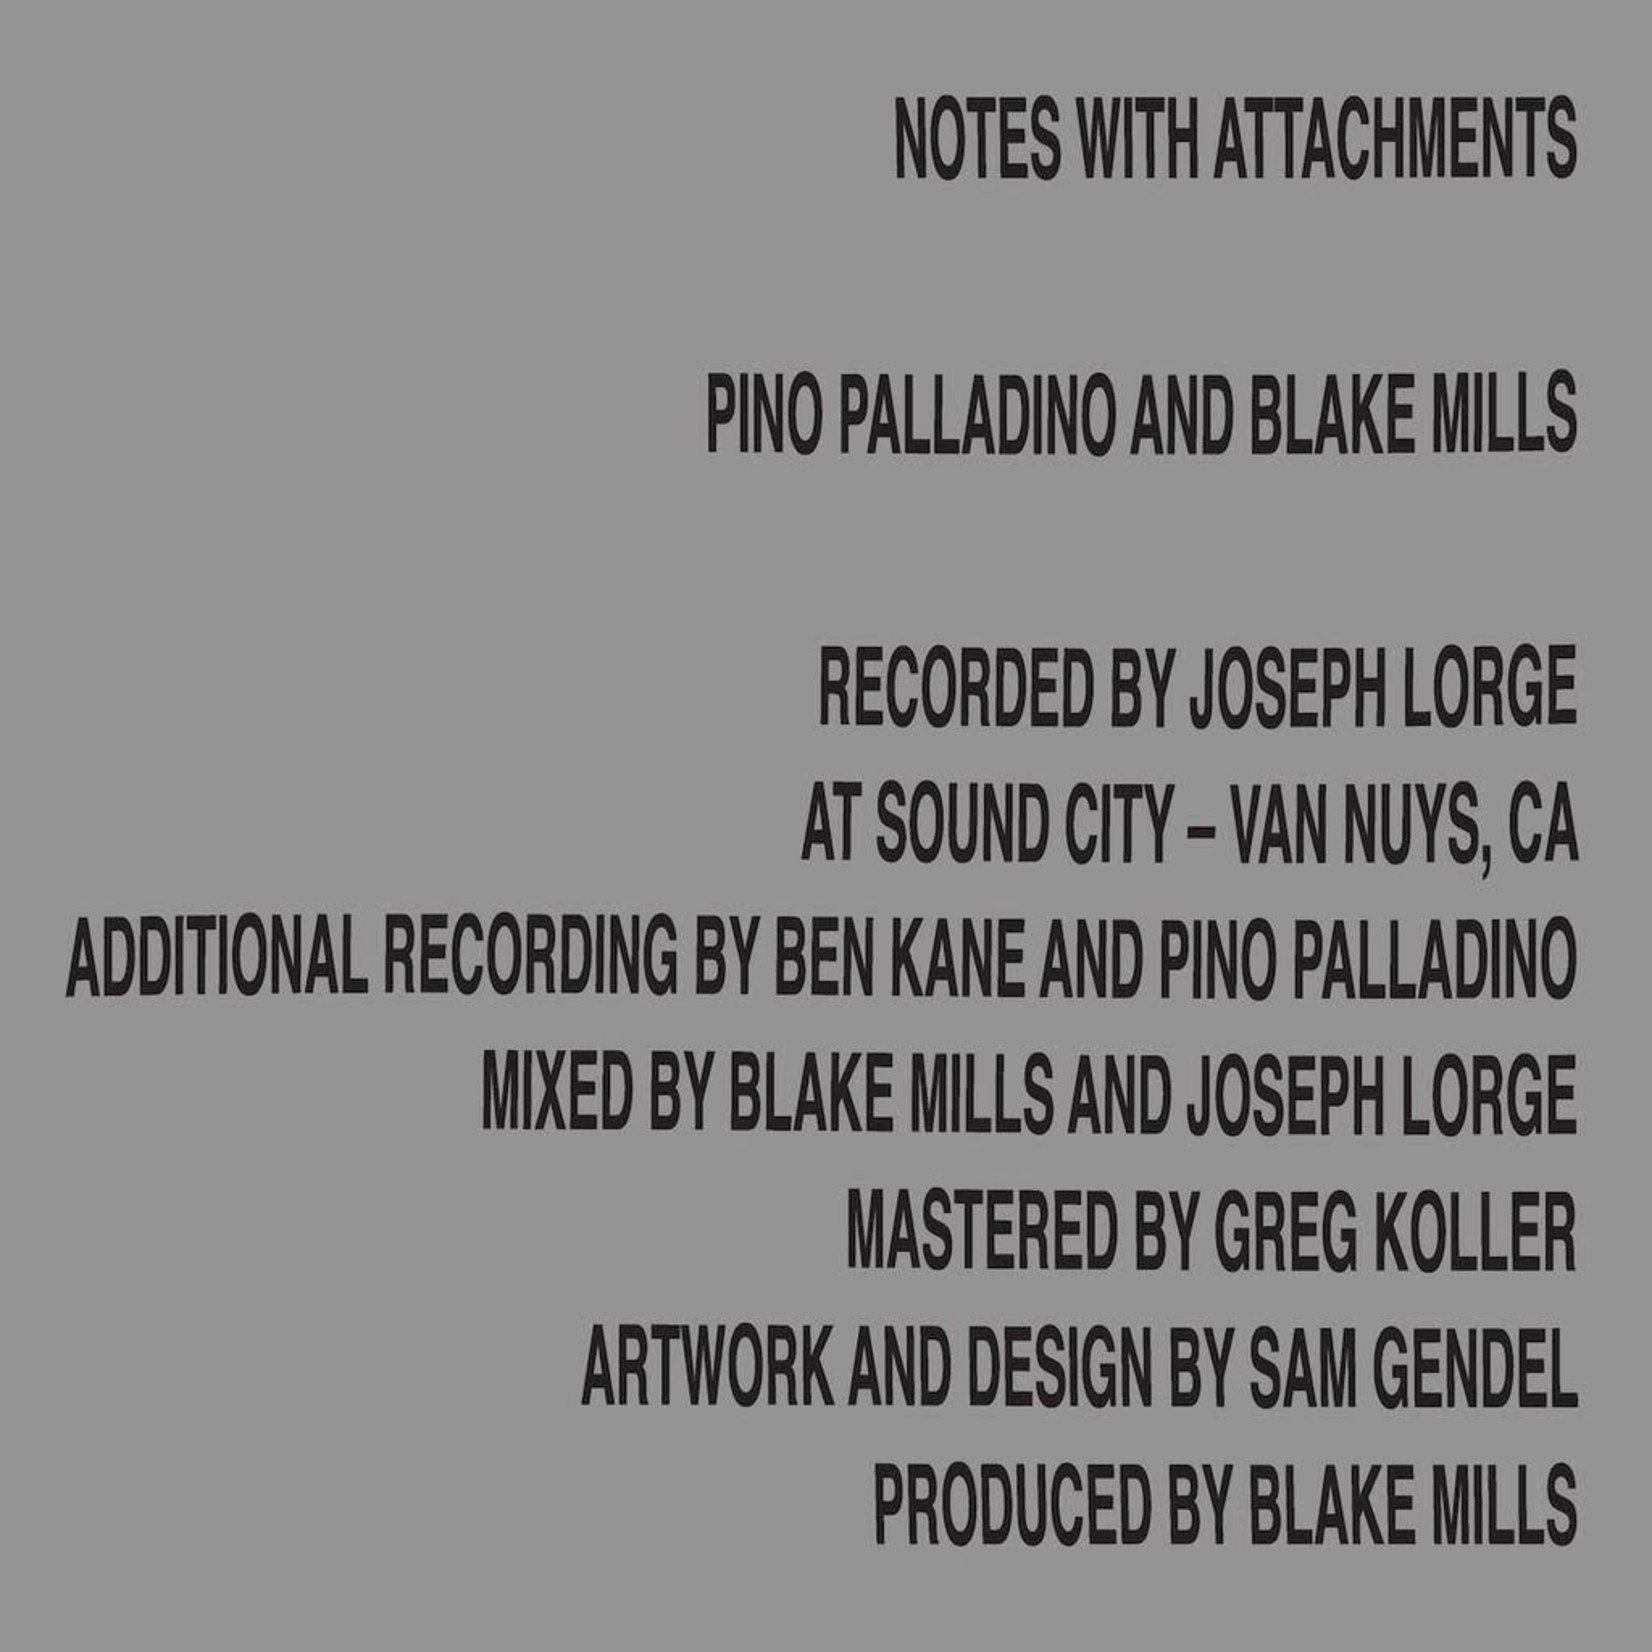 [New] Palladino, Pino & Blake Mills: Notes With Attachments